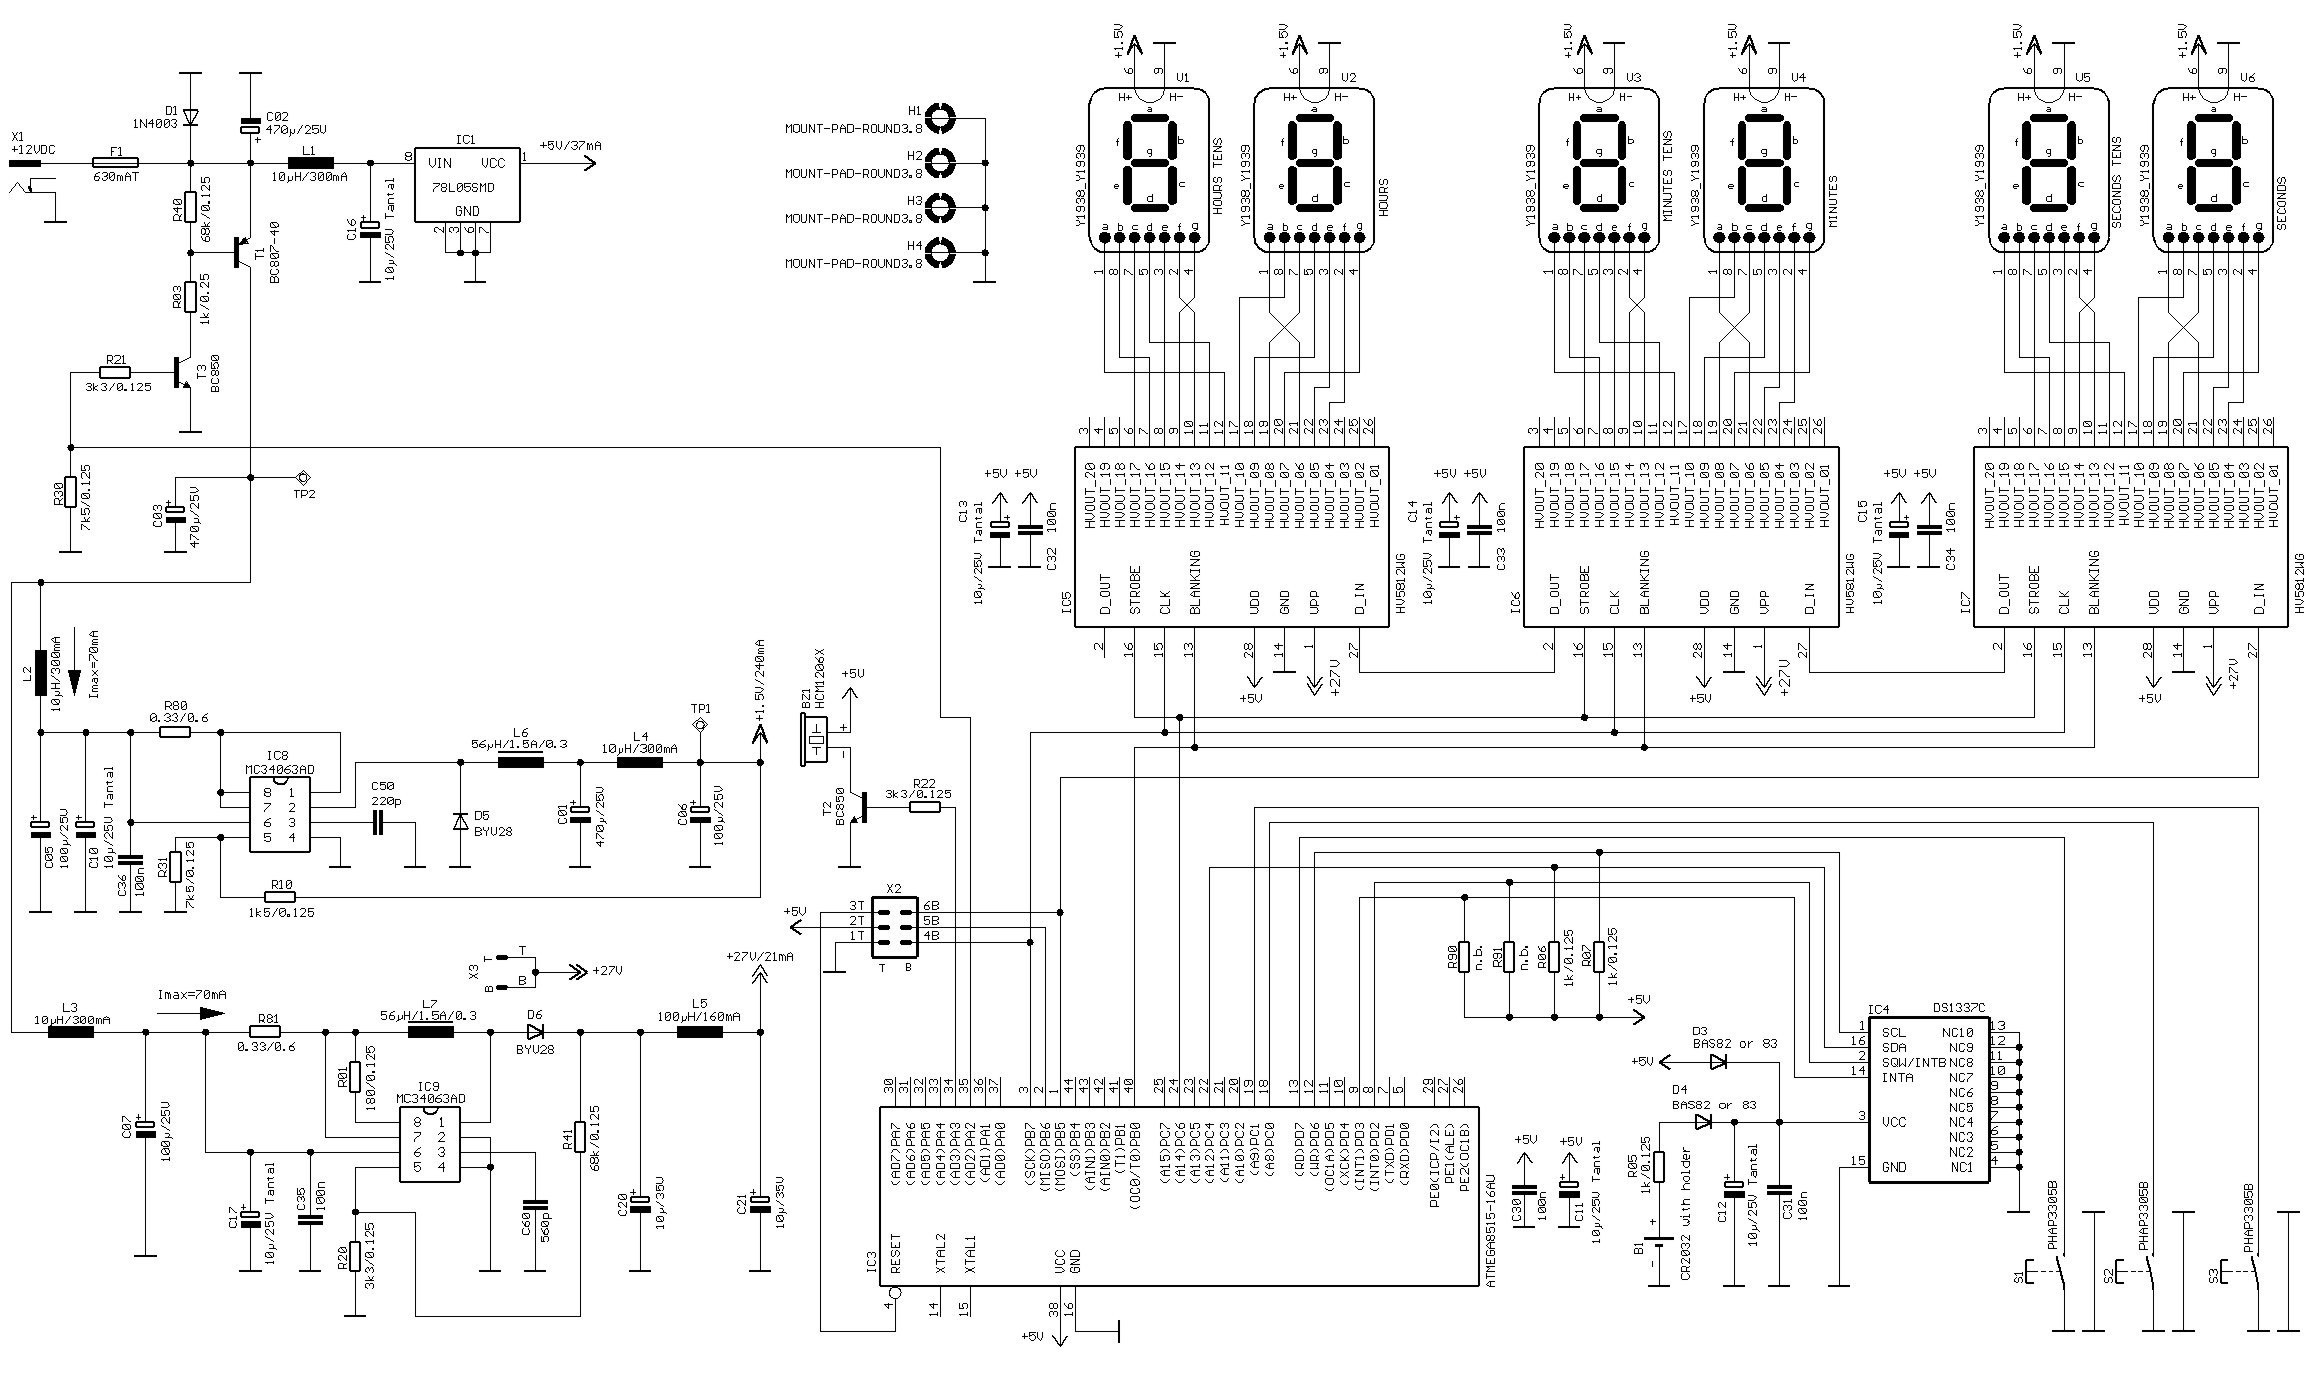 danfoss ip55 motor starter wiring diagram 2006 mazda 3 belt abb ach550 new image